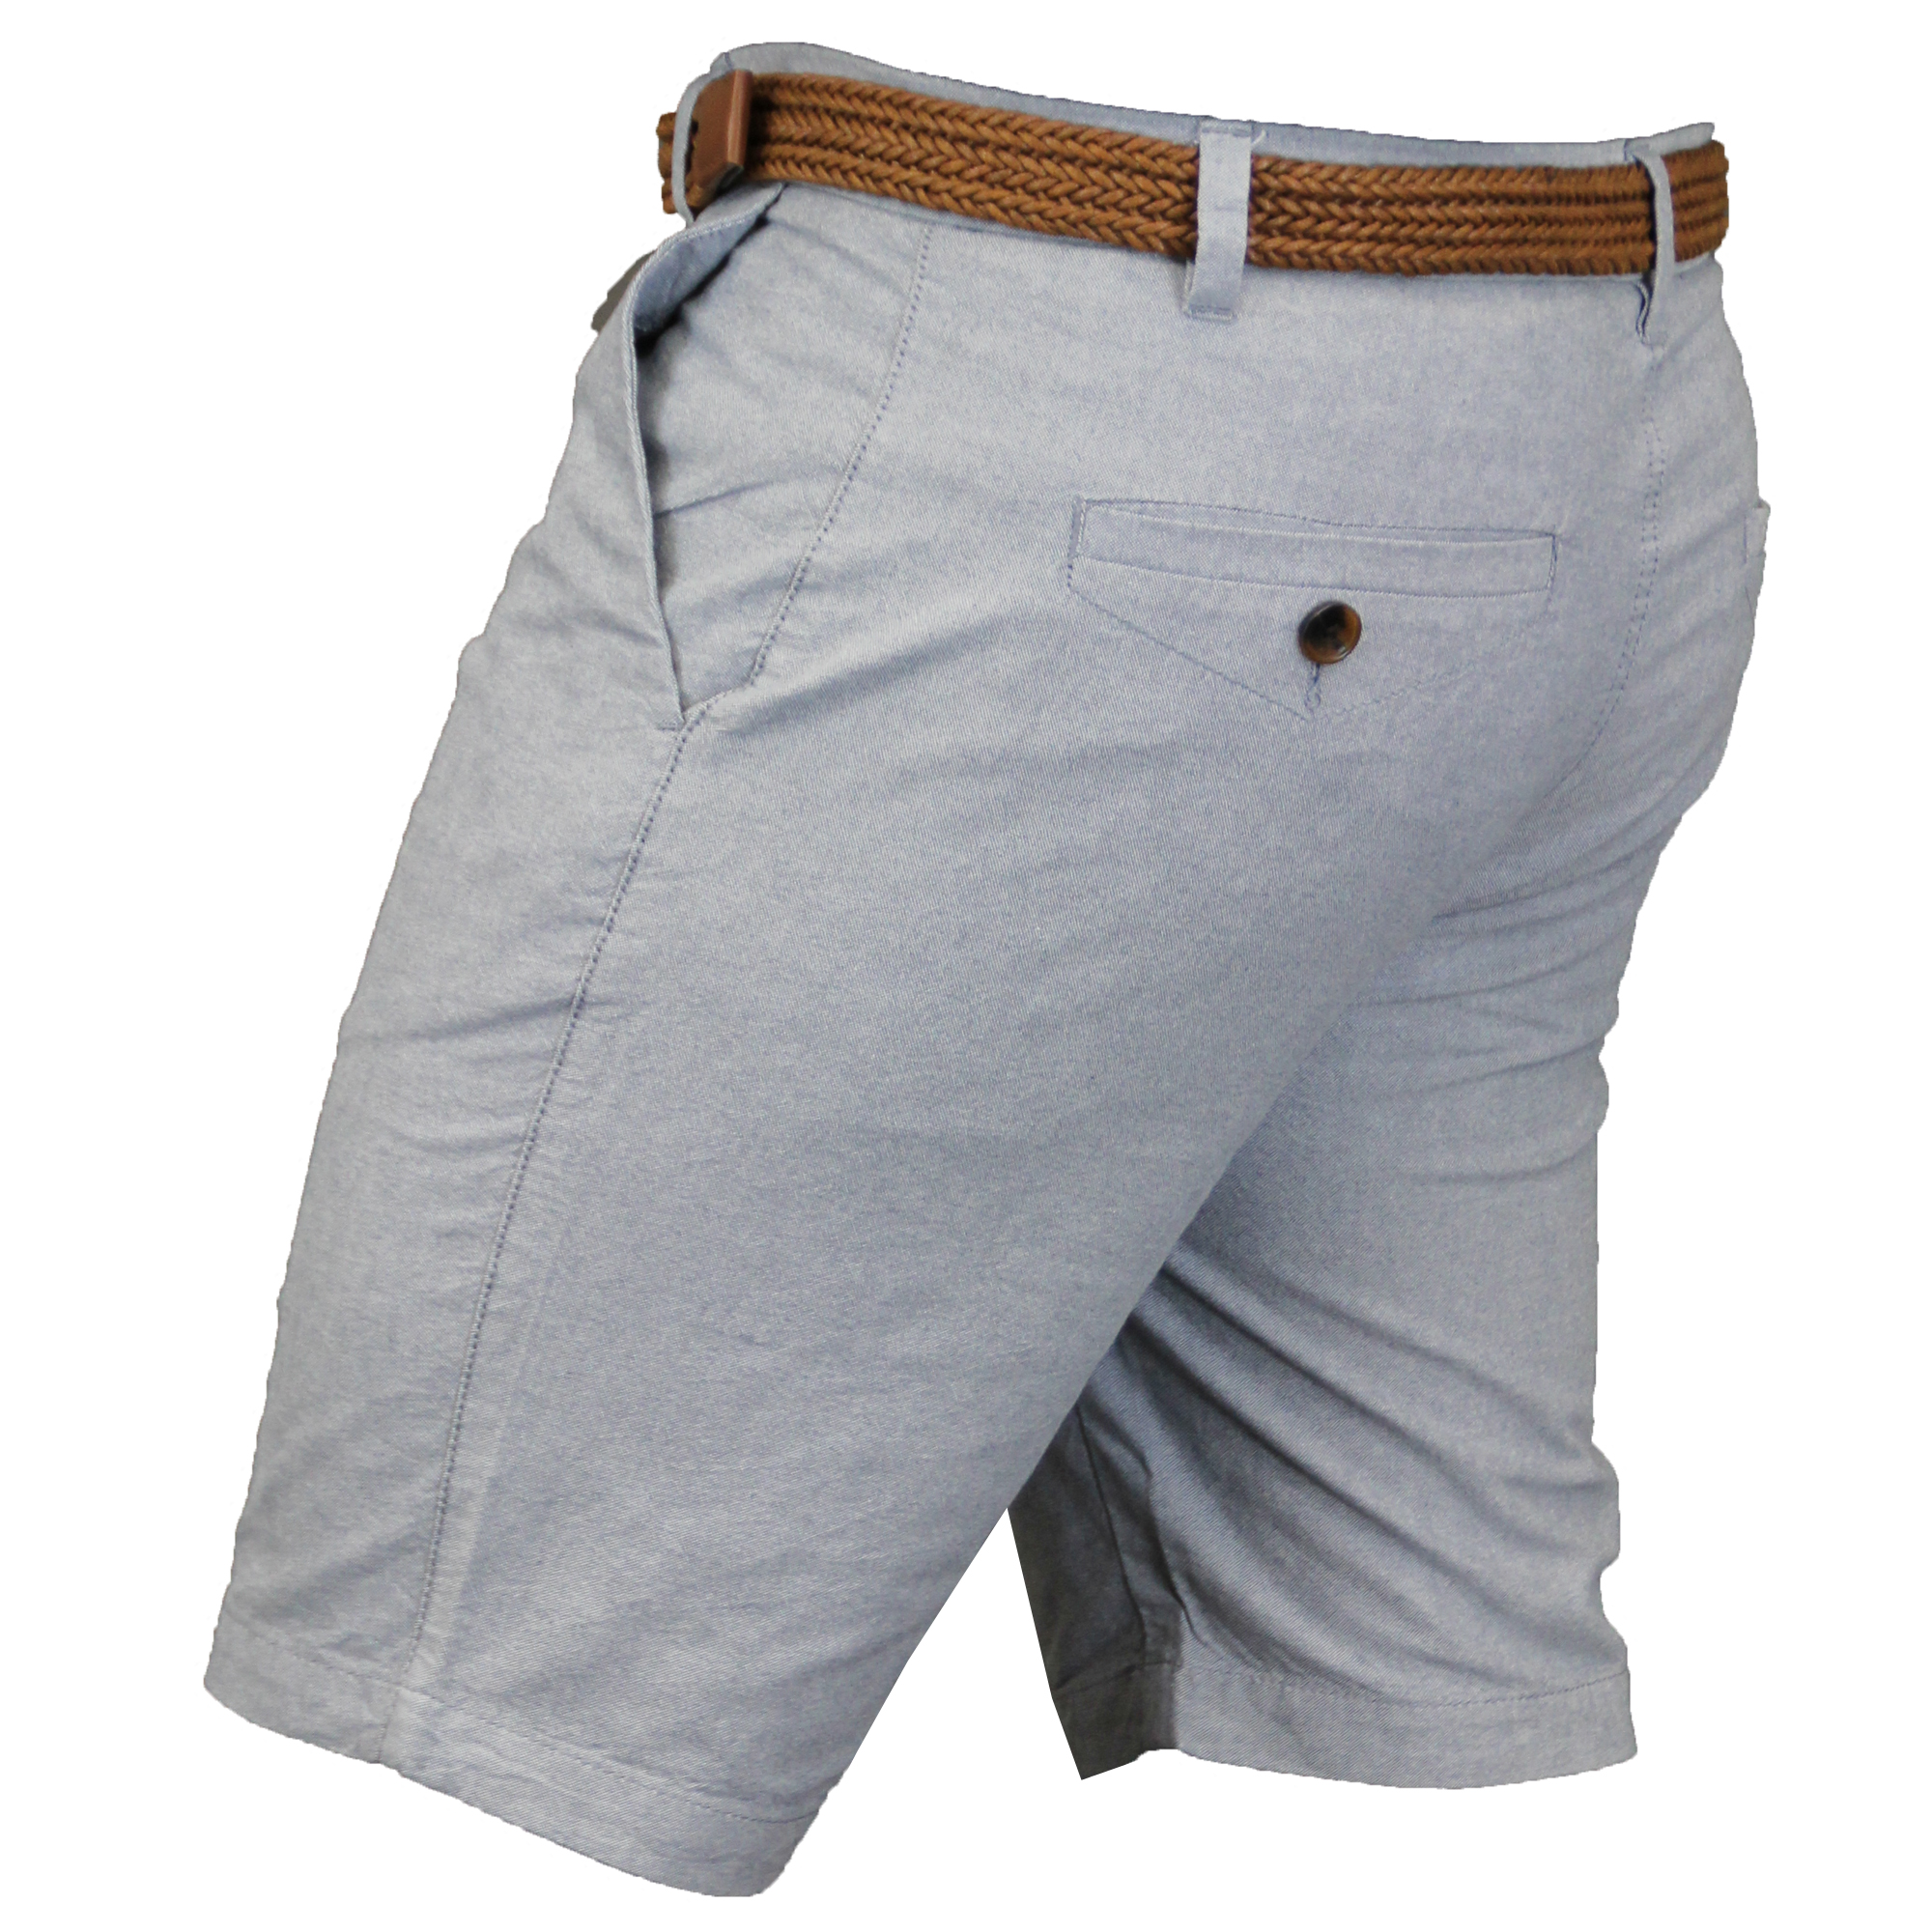 Mens-Cotton-Oxford-Chino-Shorts-Threadbare-Belted-Pants-Knee-Length-Summer-New thumbnail 4